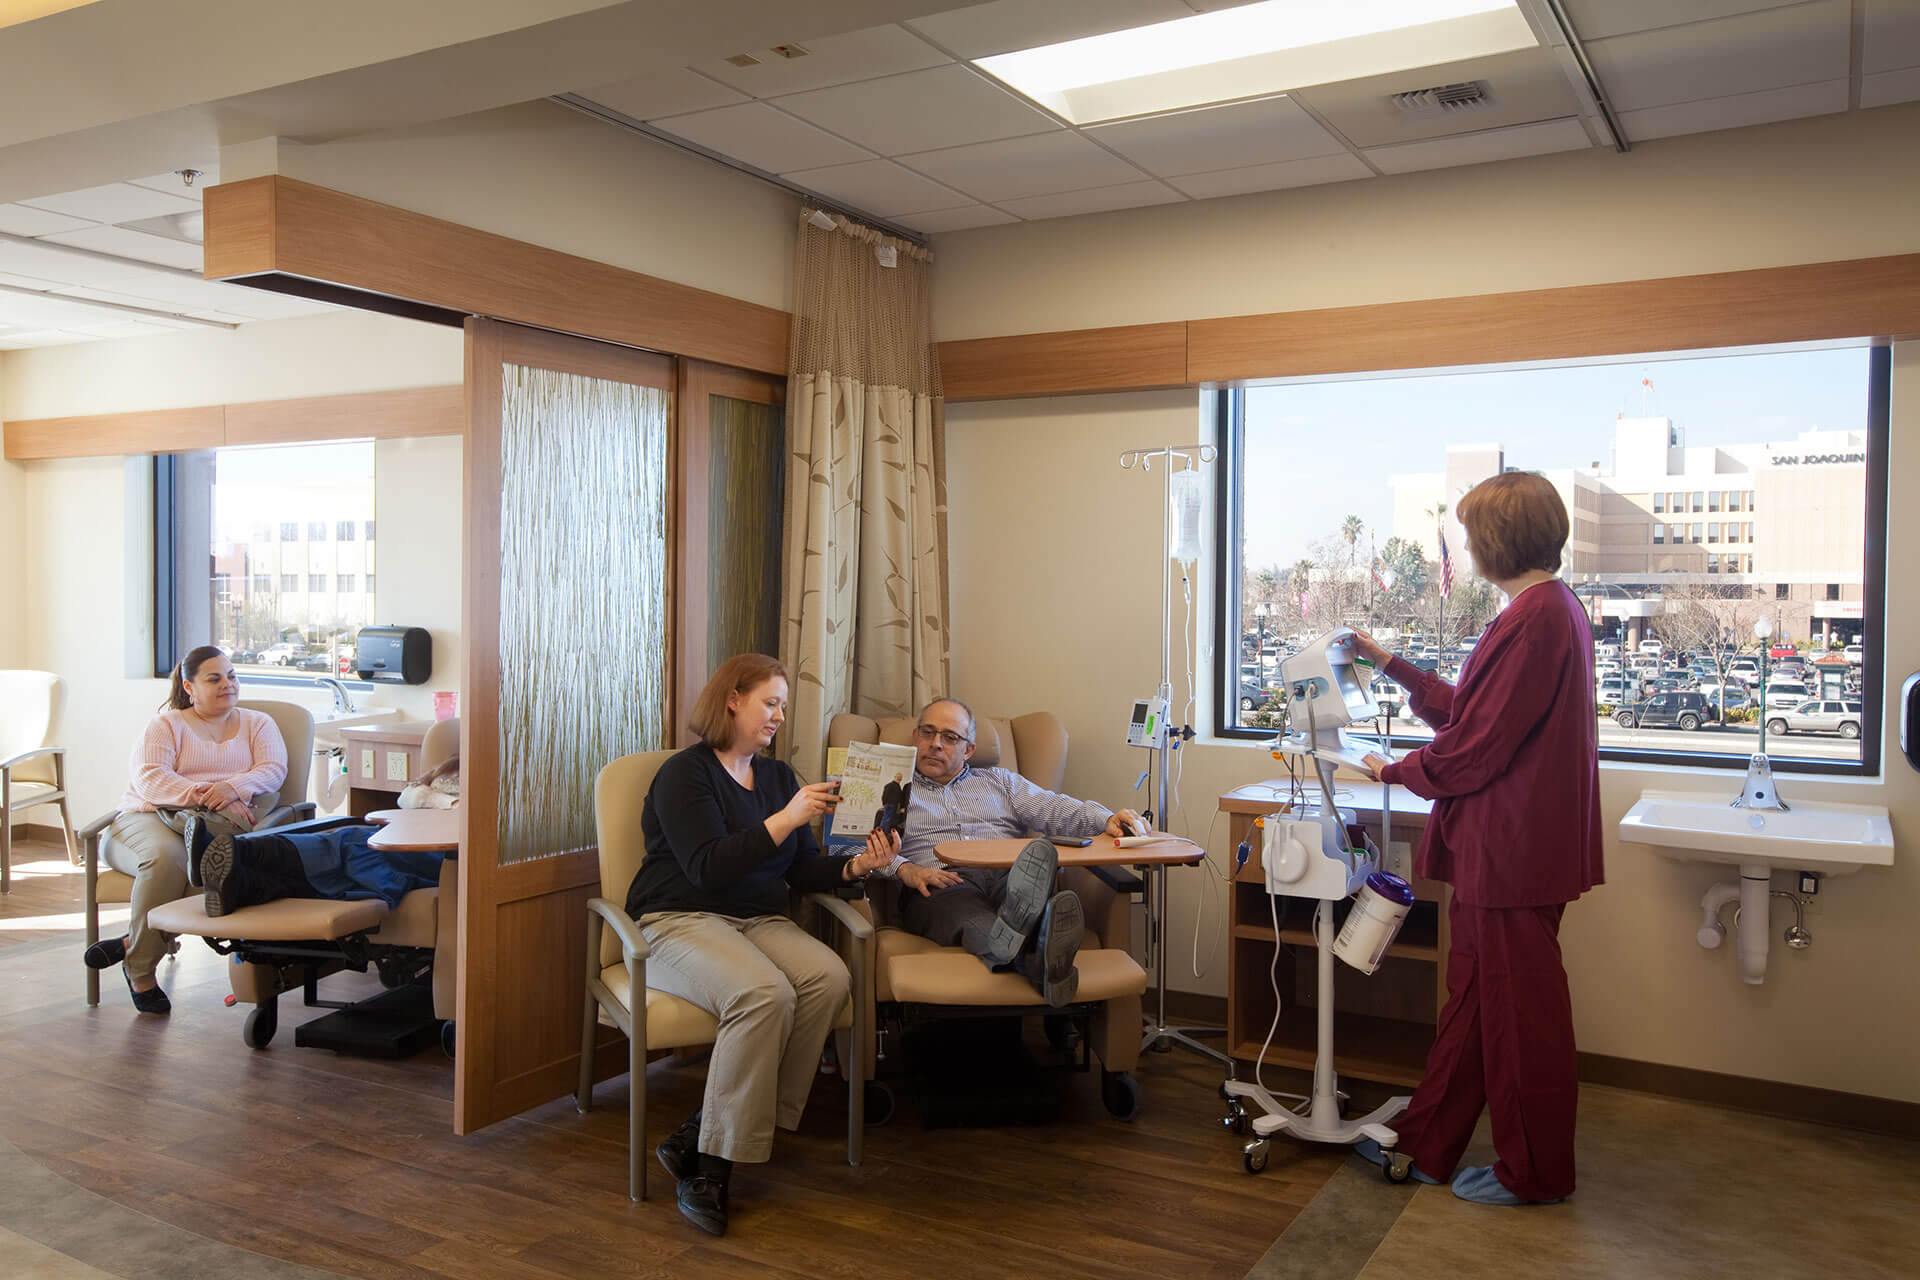 Chemotherapy and Infusion Therapy | The AIS Cancer Center